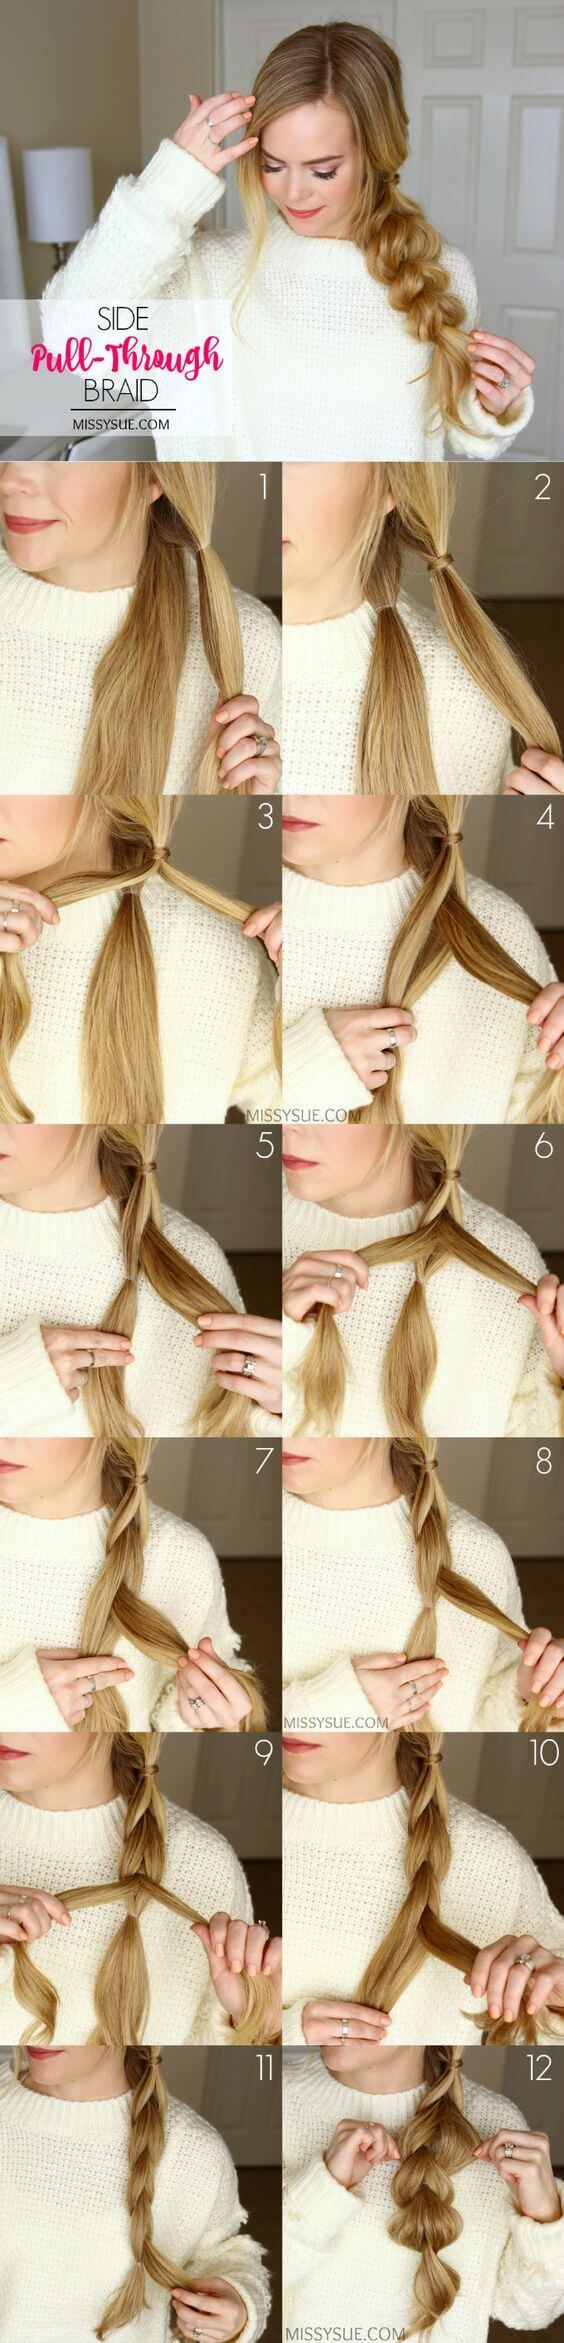 33 most popular step by step hairstyle tutorials | fashion